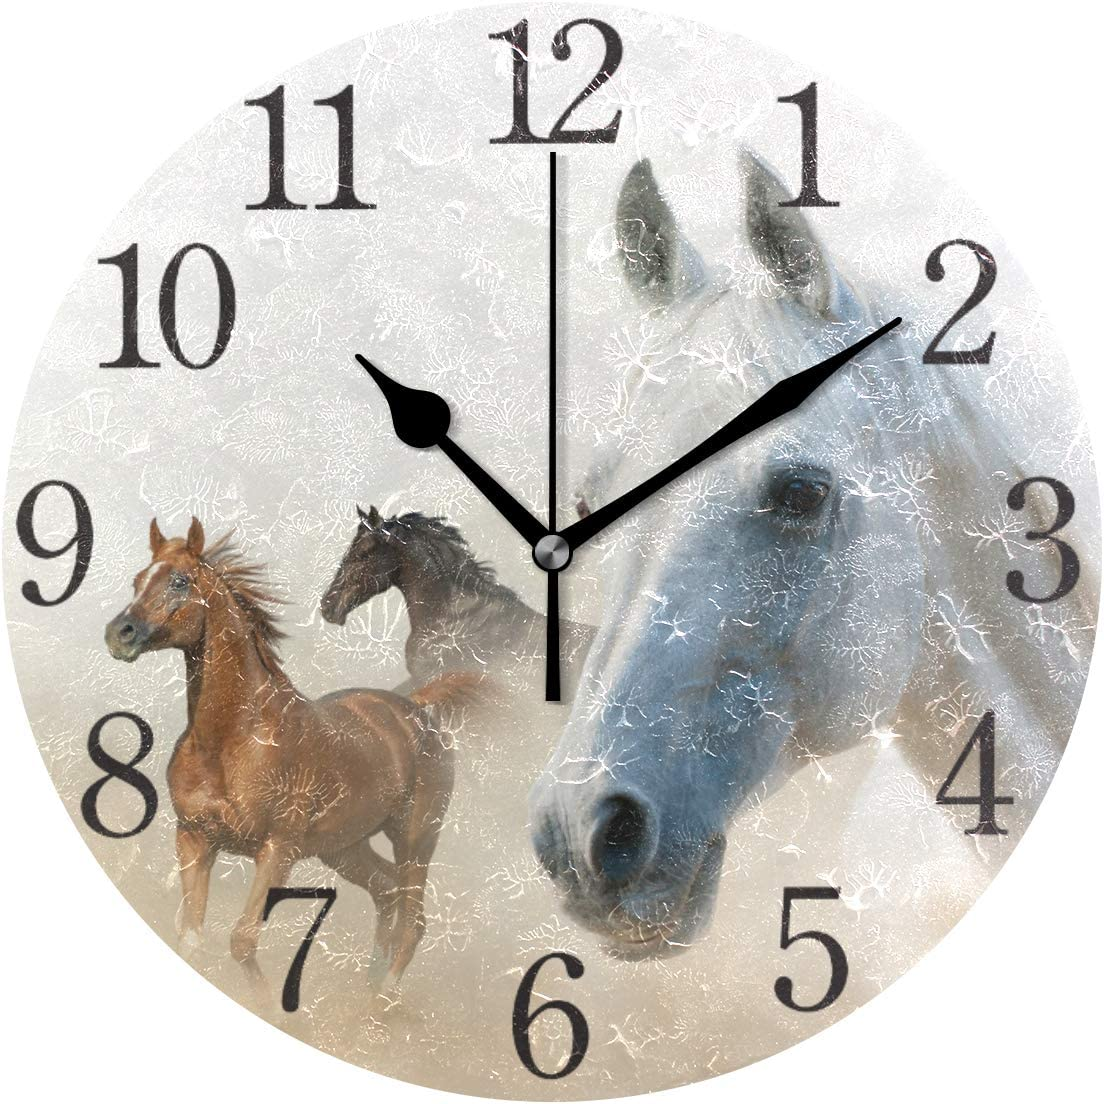 Wall Clock Silent 9.5 Inch Battery Operated Non Ticking Love Couple Round Decorative Acrylic Quiet Clocks for Bedroom Office School Home by domook (2 Horses)